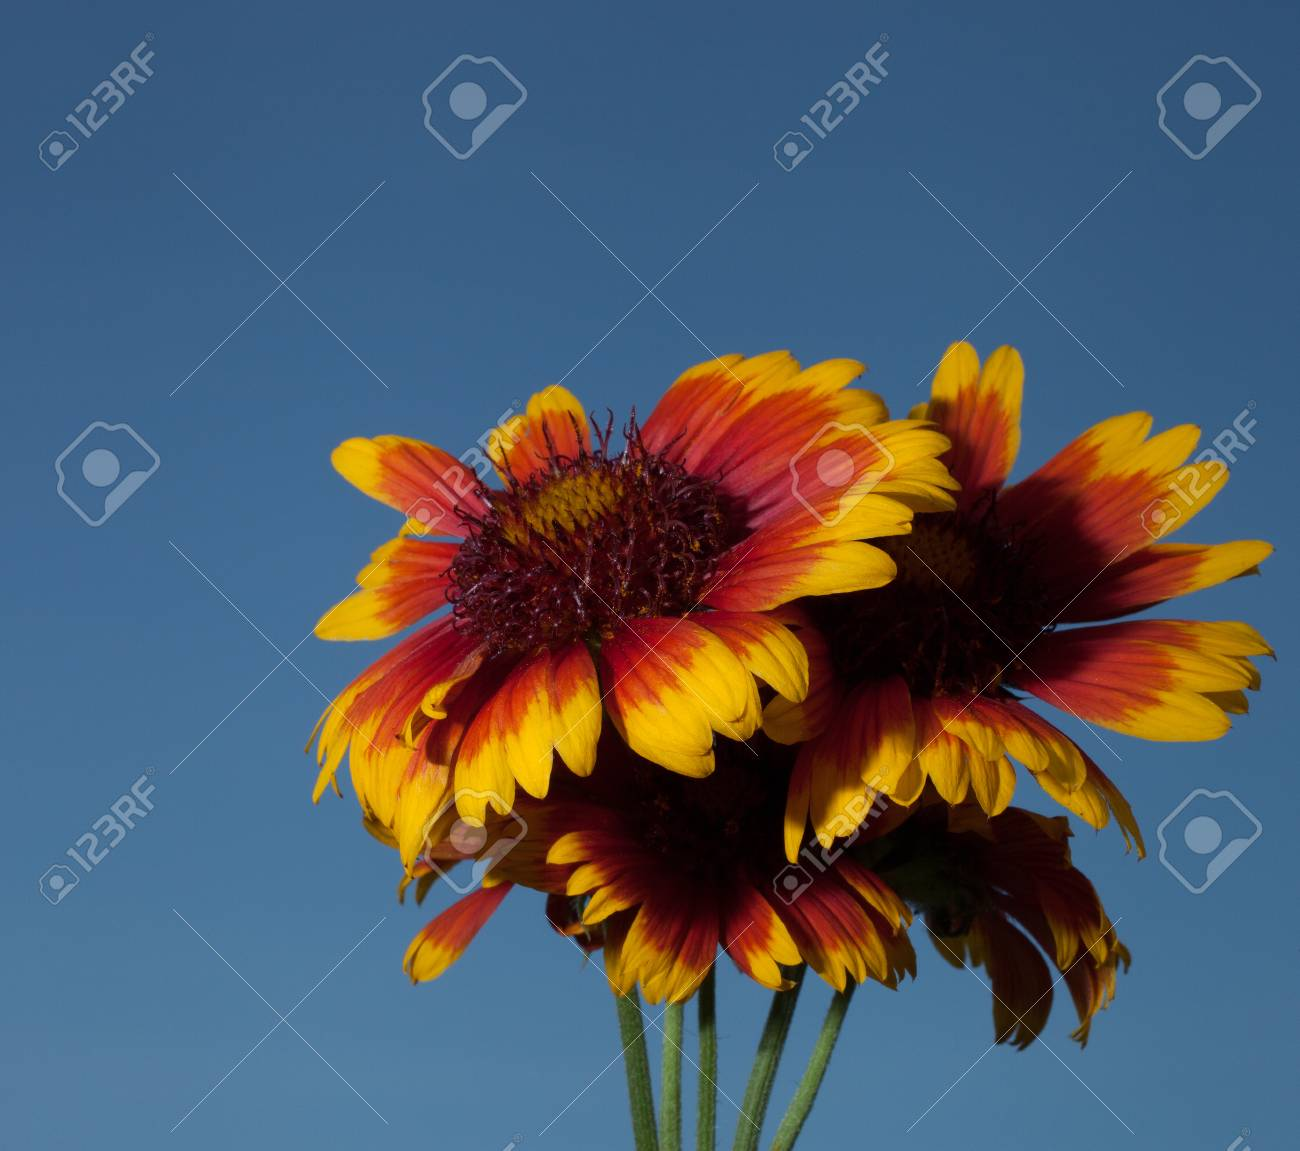 Orange And Yellow Flowers In Bloom With Blue For Background Stock